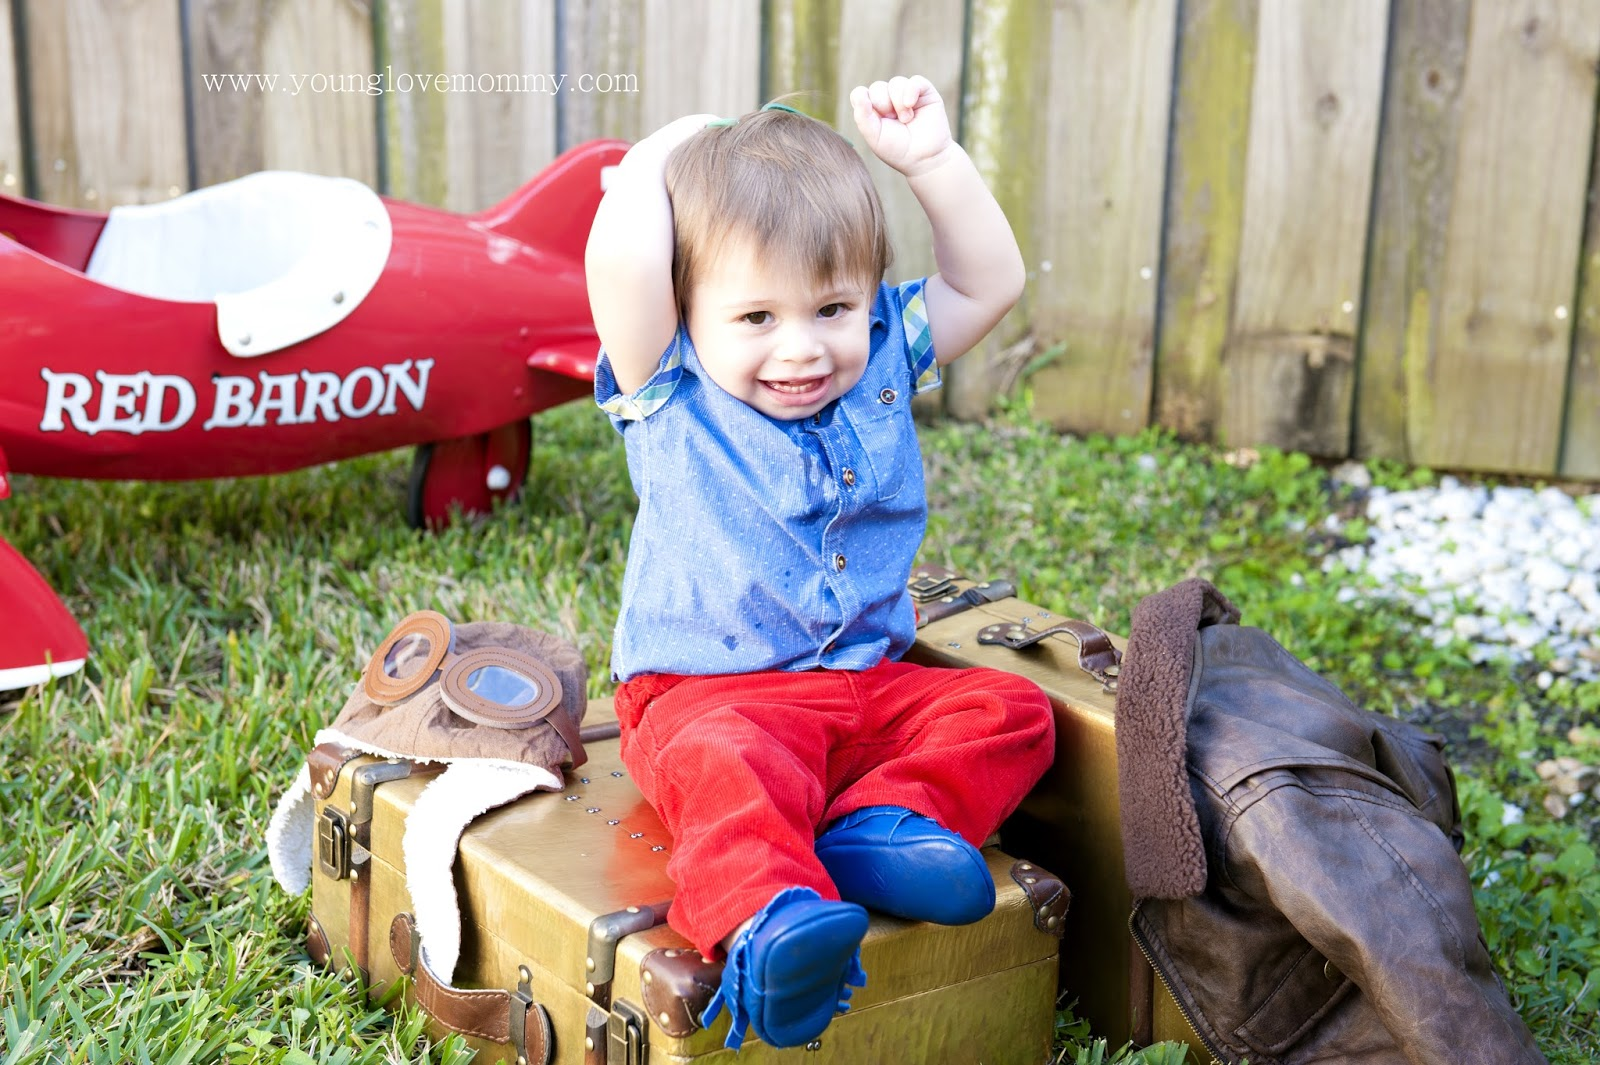 Vintage Airplane Party - DIY